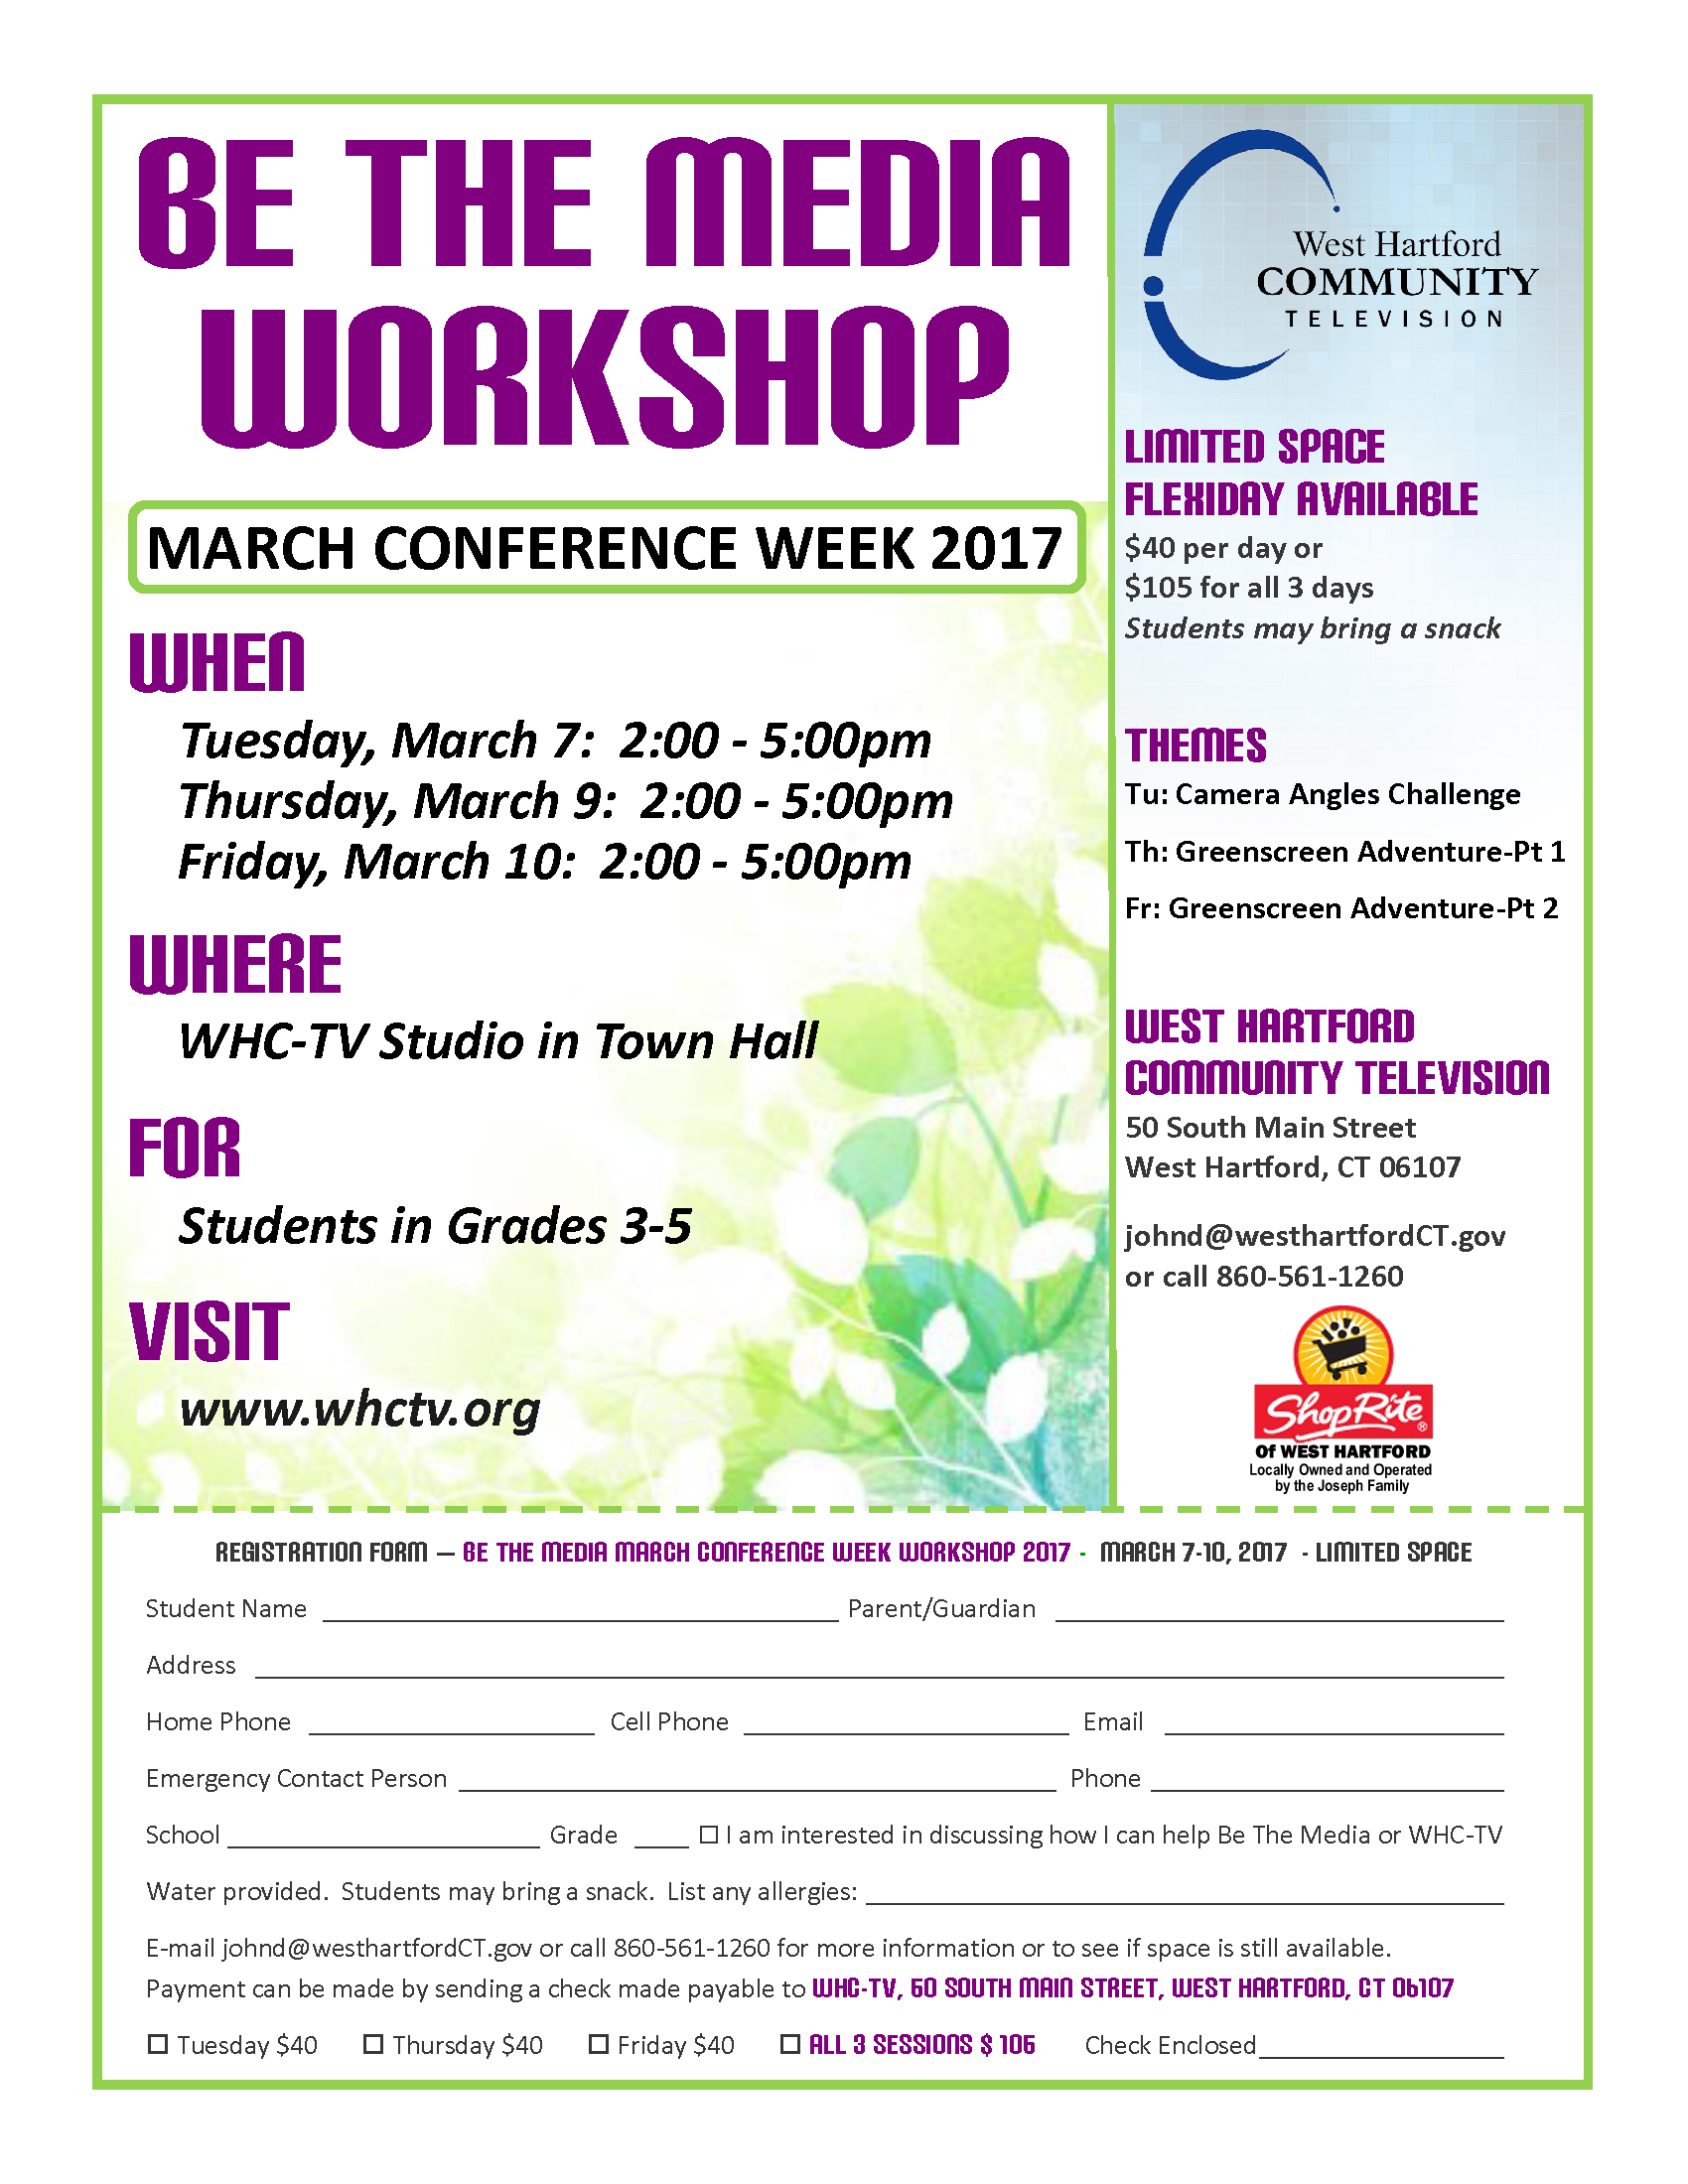 BTM Conference Week Workshop March 7 10 2017